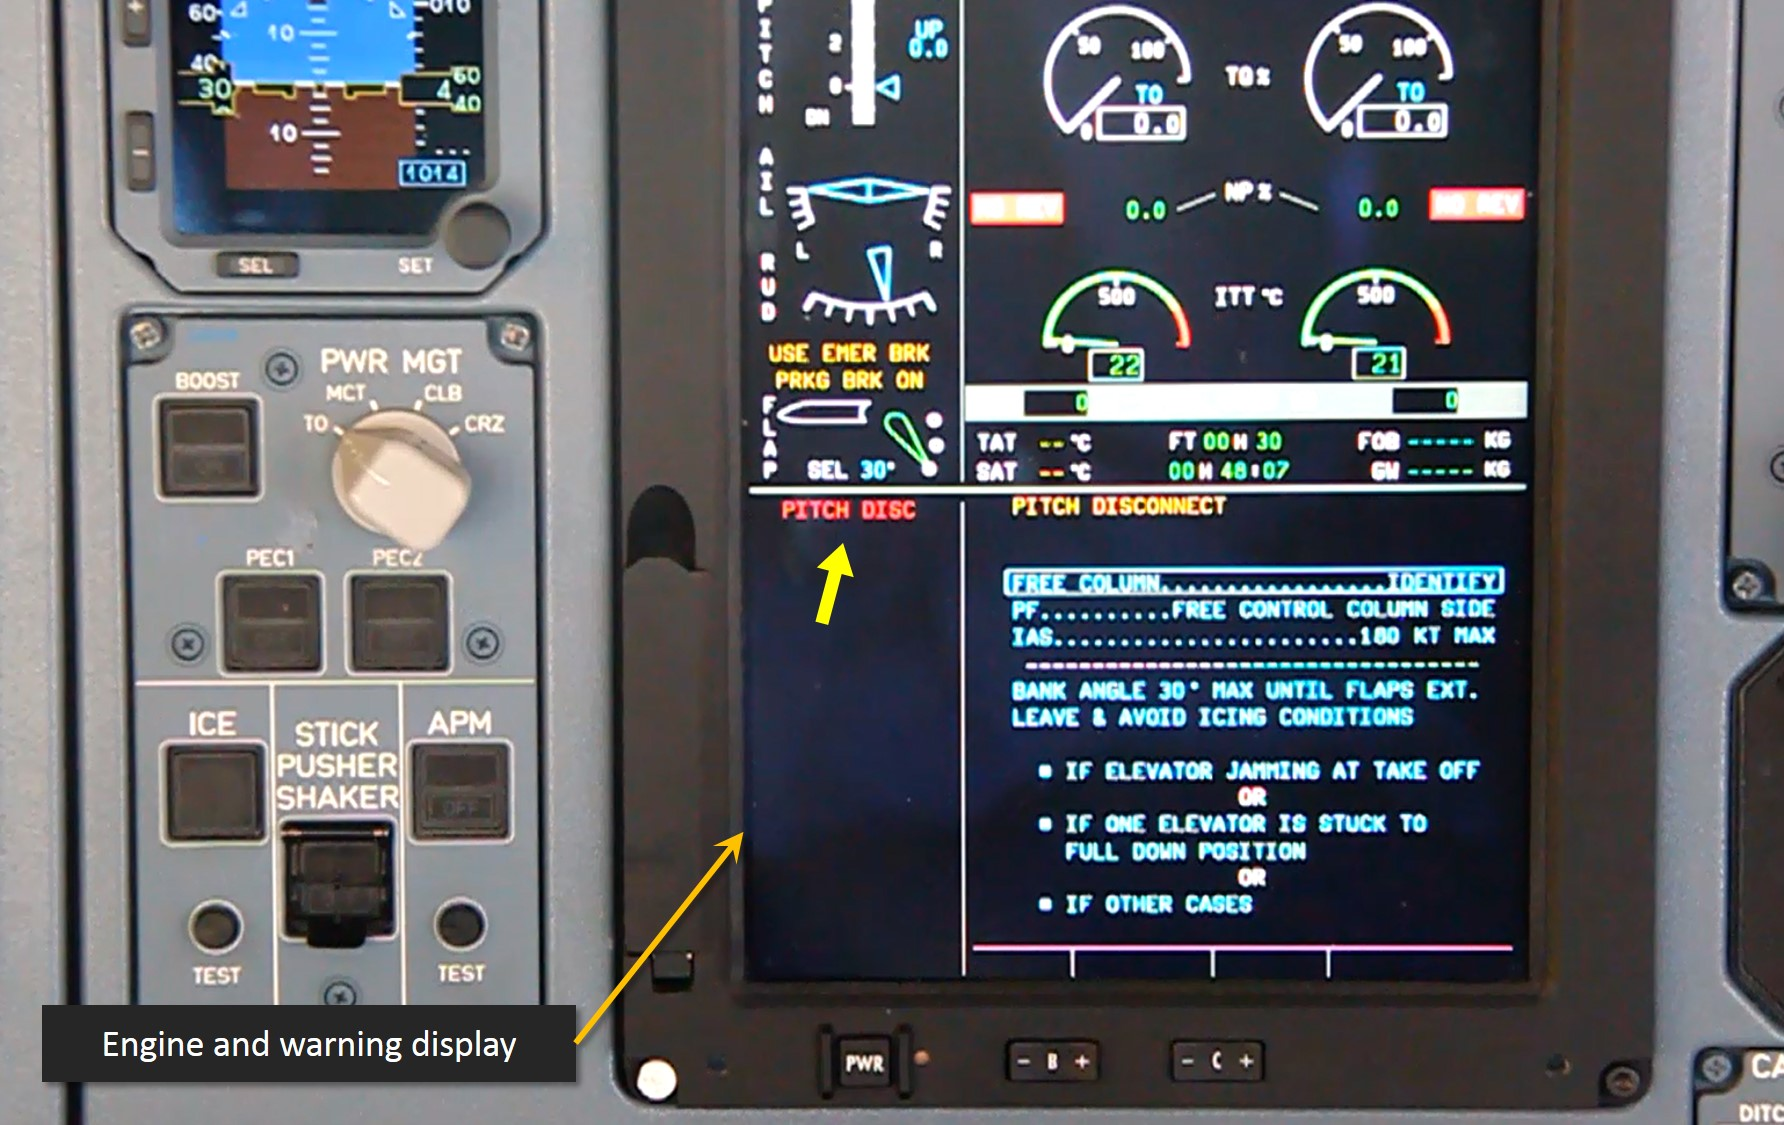 Figure 5: Pitch disconnect warning presentation on the engine and warning display. The red PITCH DISC warning message, indicated by the thick yellow arrow, is located on the lower left of the screen. The pitch disconnect procedure is displayed to the right of the warning message